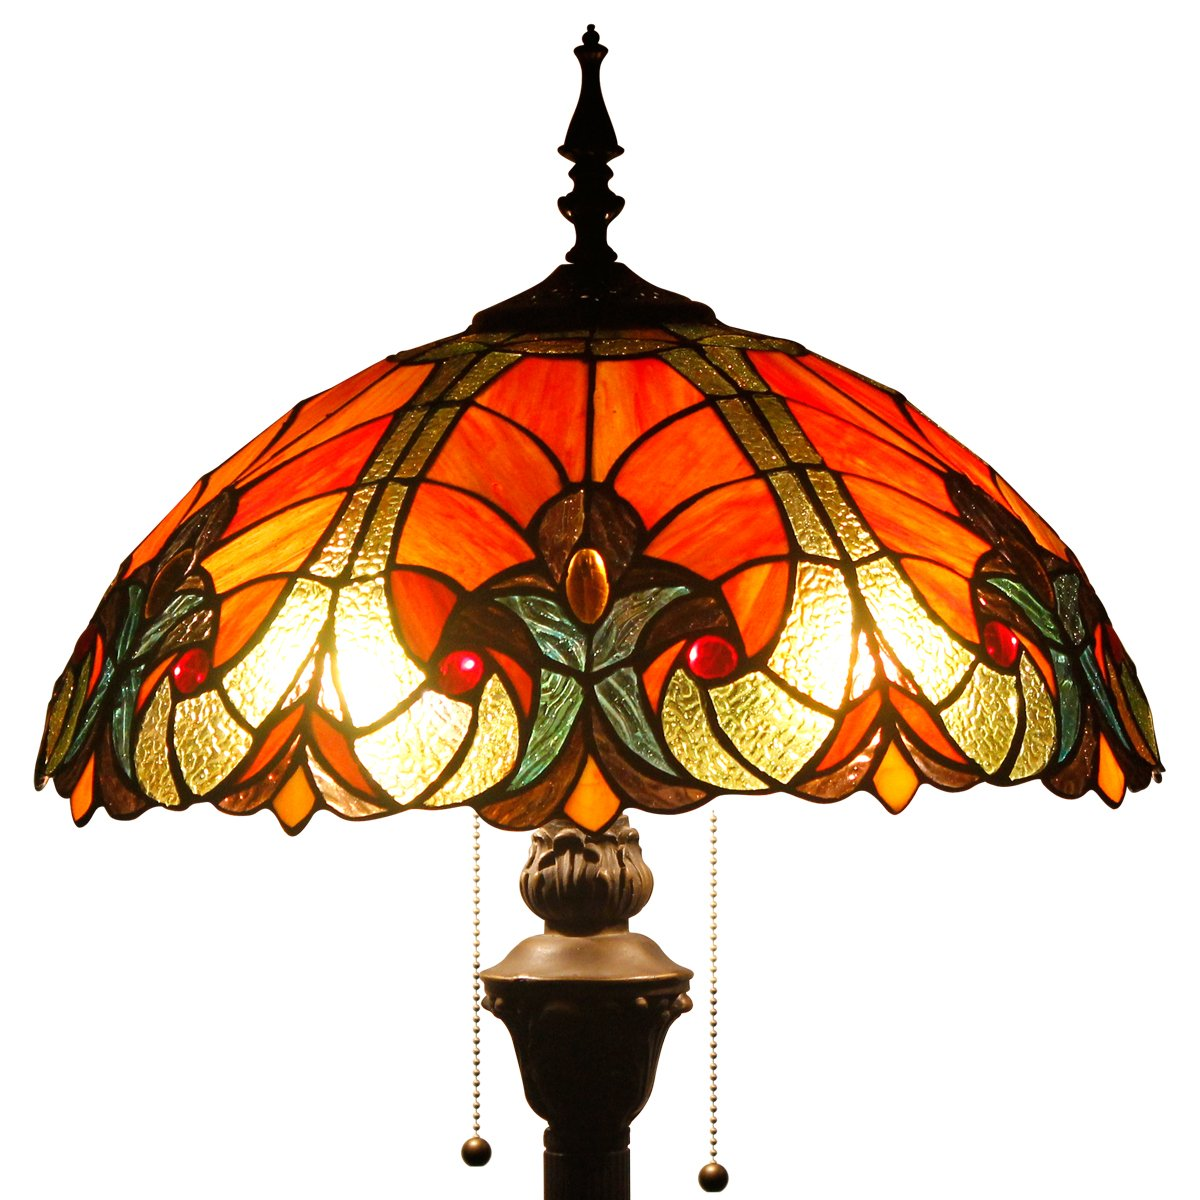 Tiffany Style Floor Standing Lamp 64 Inch Tall Red Liaison Stained Glass Shade 2 Light Antique Base for Bedroom Living Room Reading Lighting Coffee Table Set S160R WERFACTORY